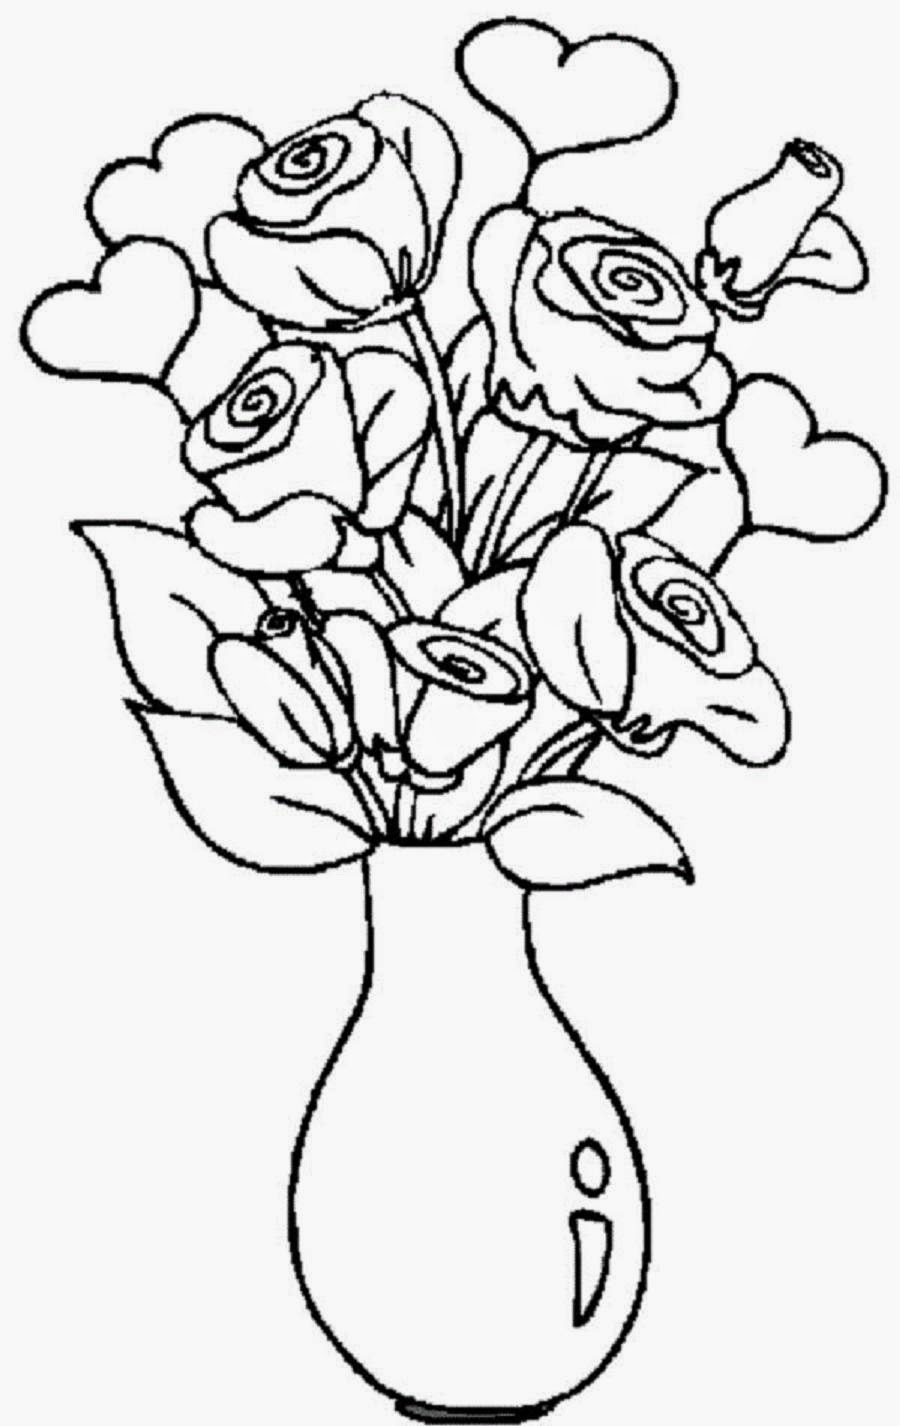 900x1426 Flower Pots With Roses Drawings Rose Flower Drawing Designs Roses